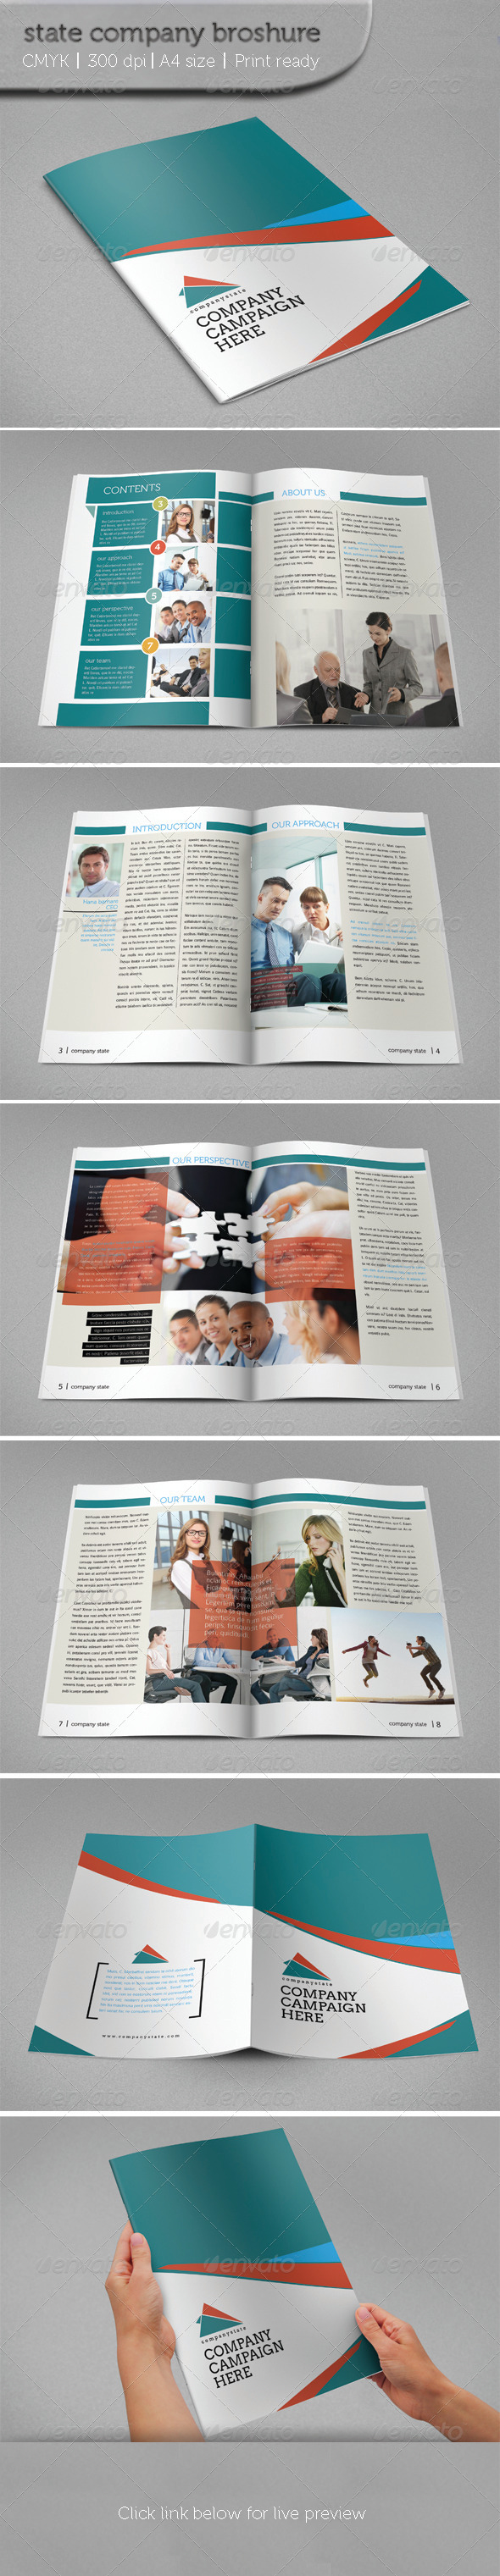 State Company Brochure - Brochures Print Templates